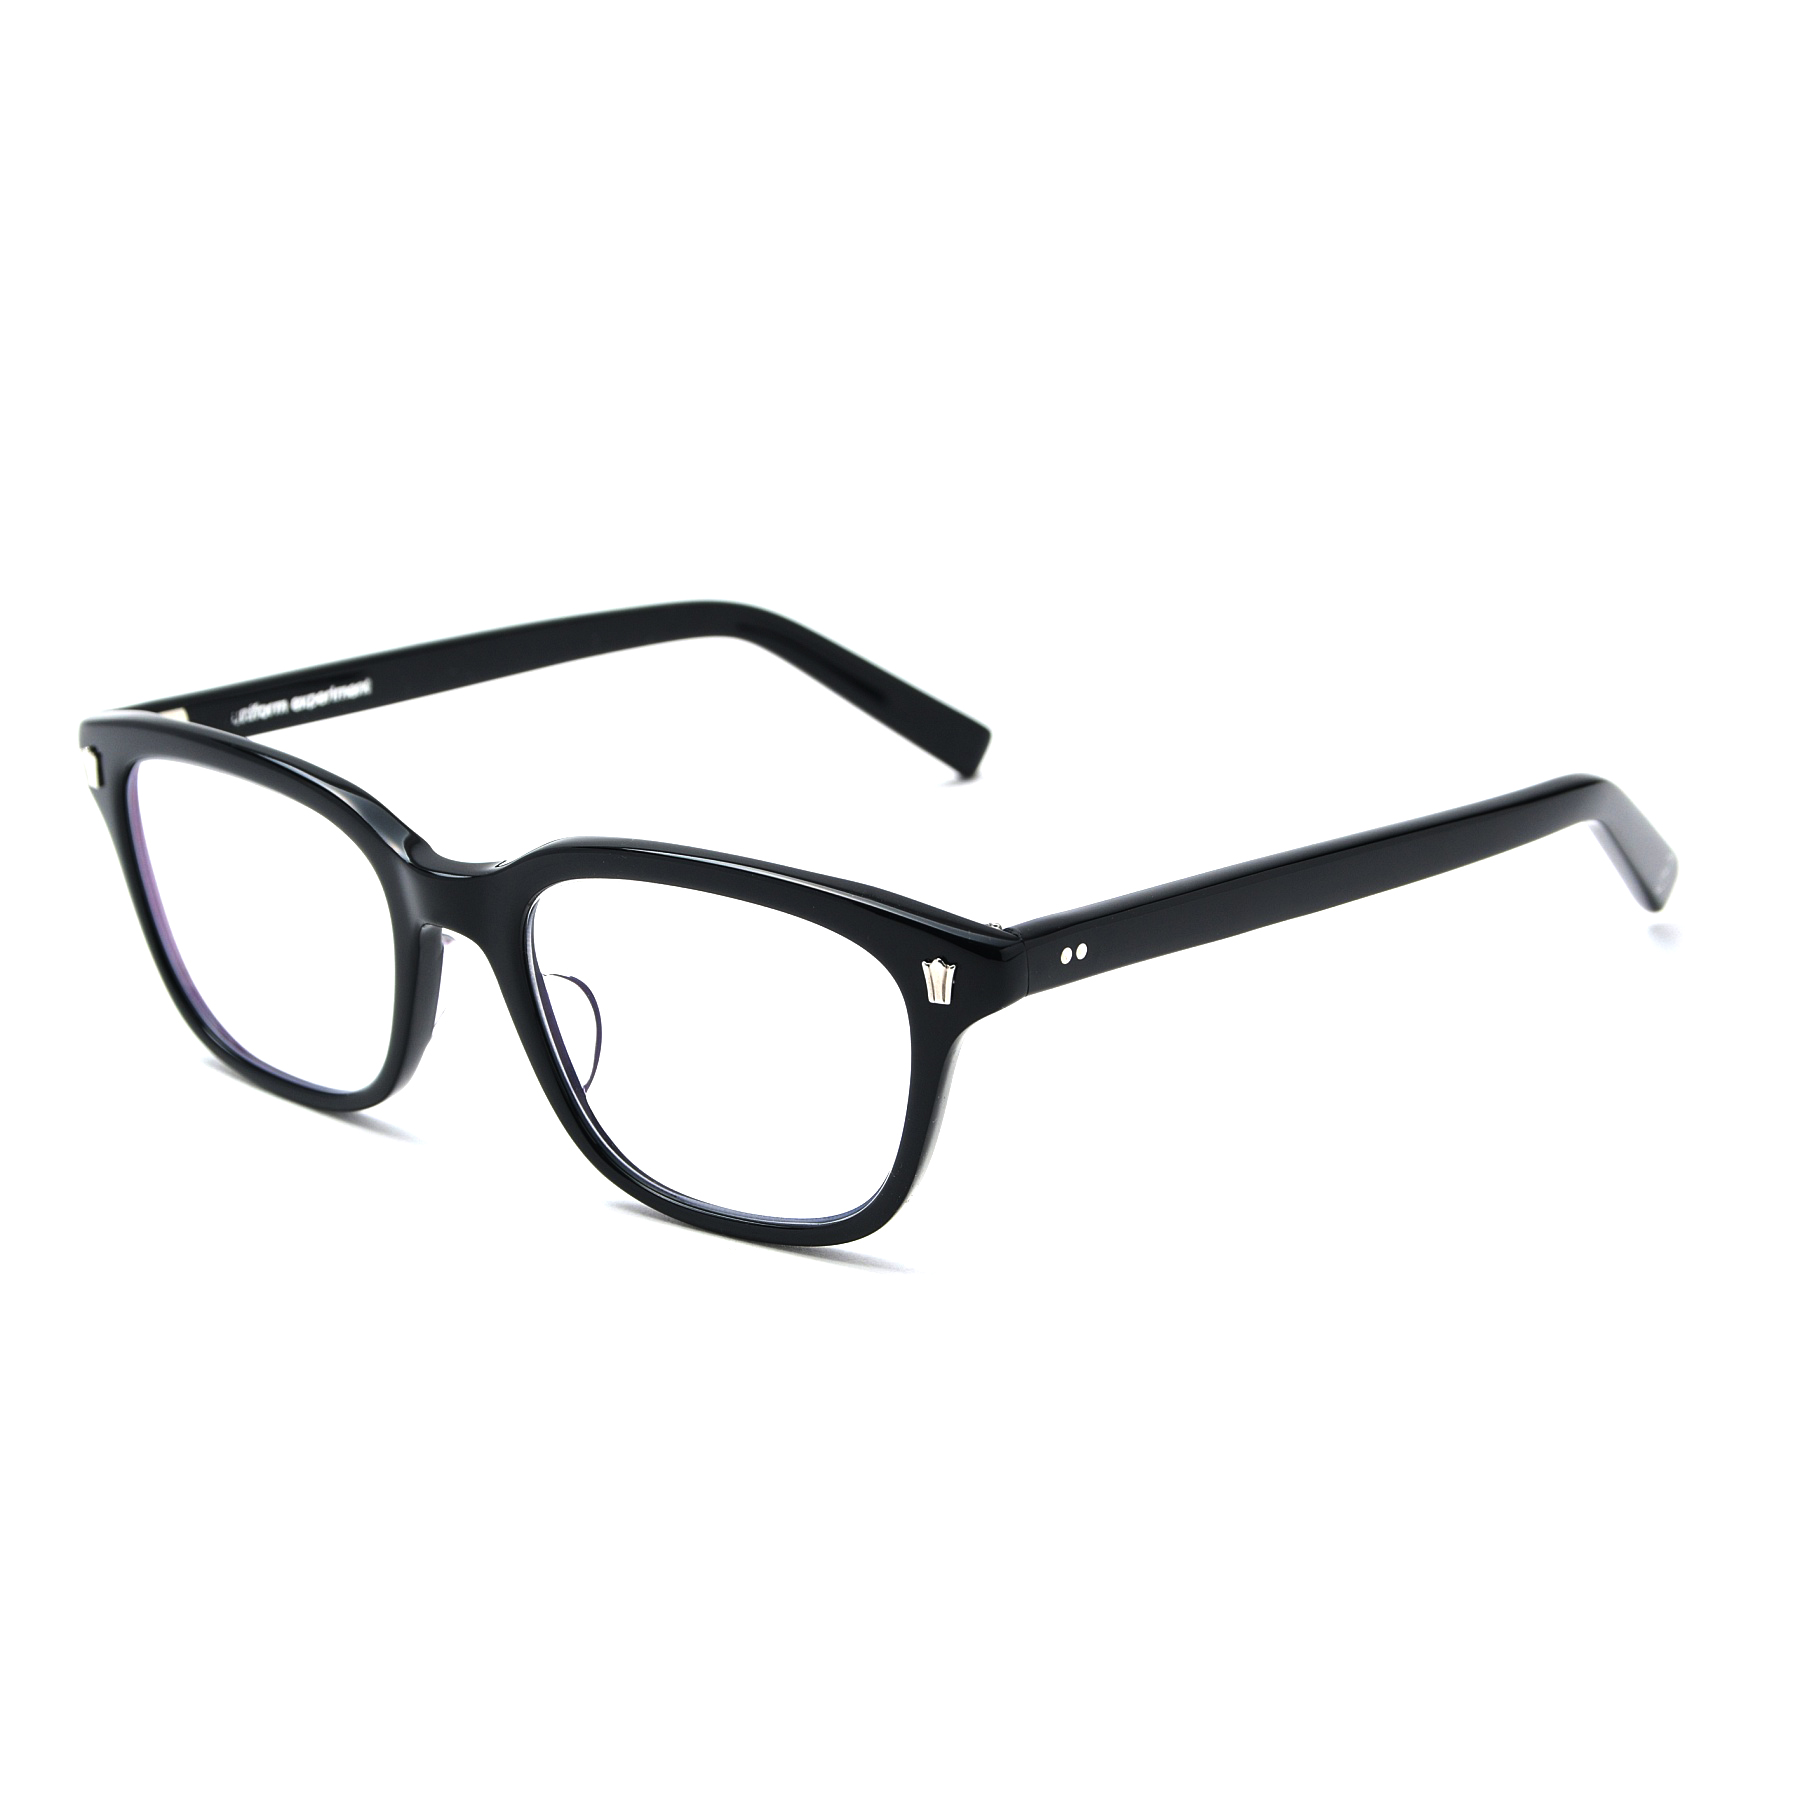 uniform experiment / 泰八郎謹製 GLASSES (Black)